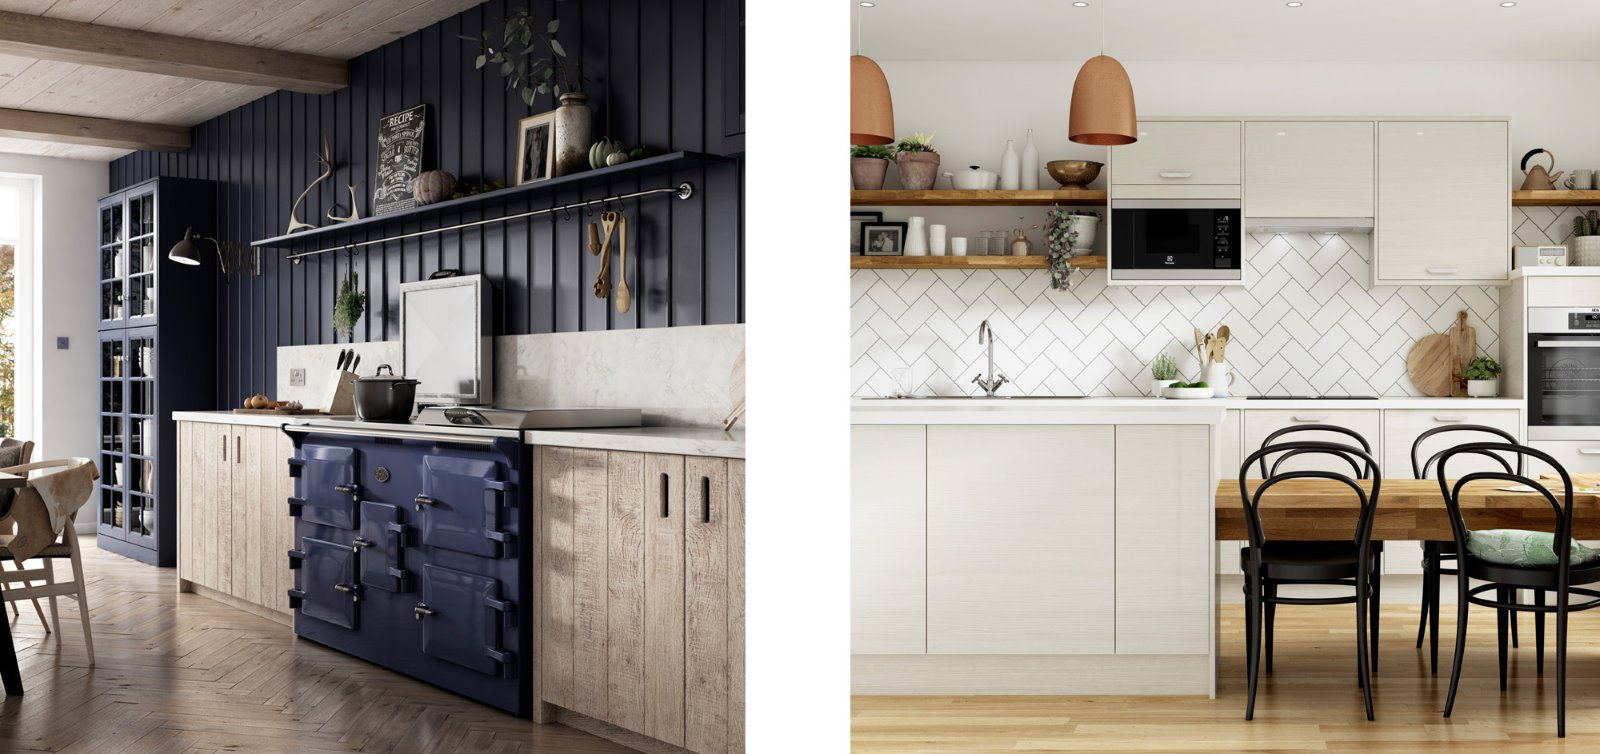 white chevron tile splashback panelling kitchen